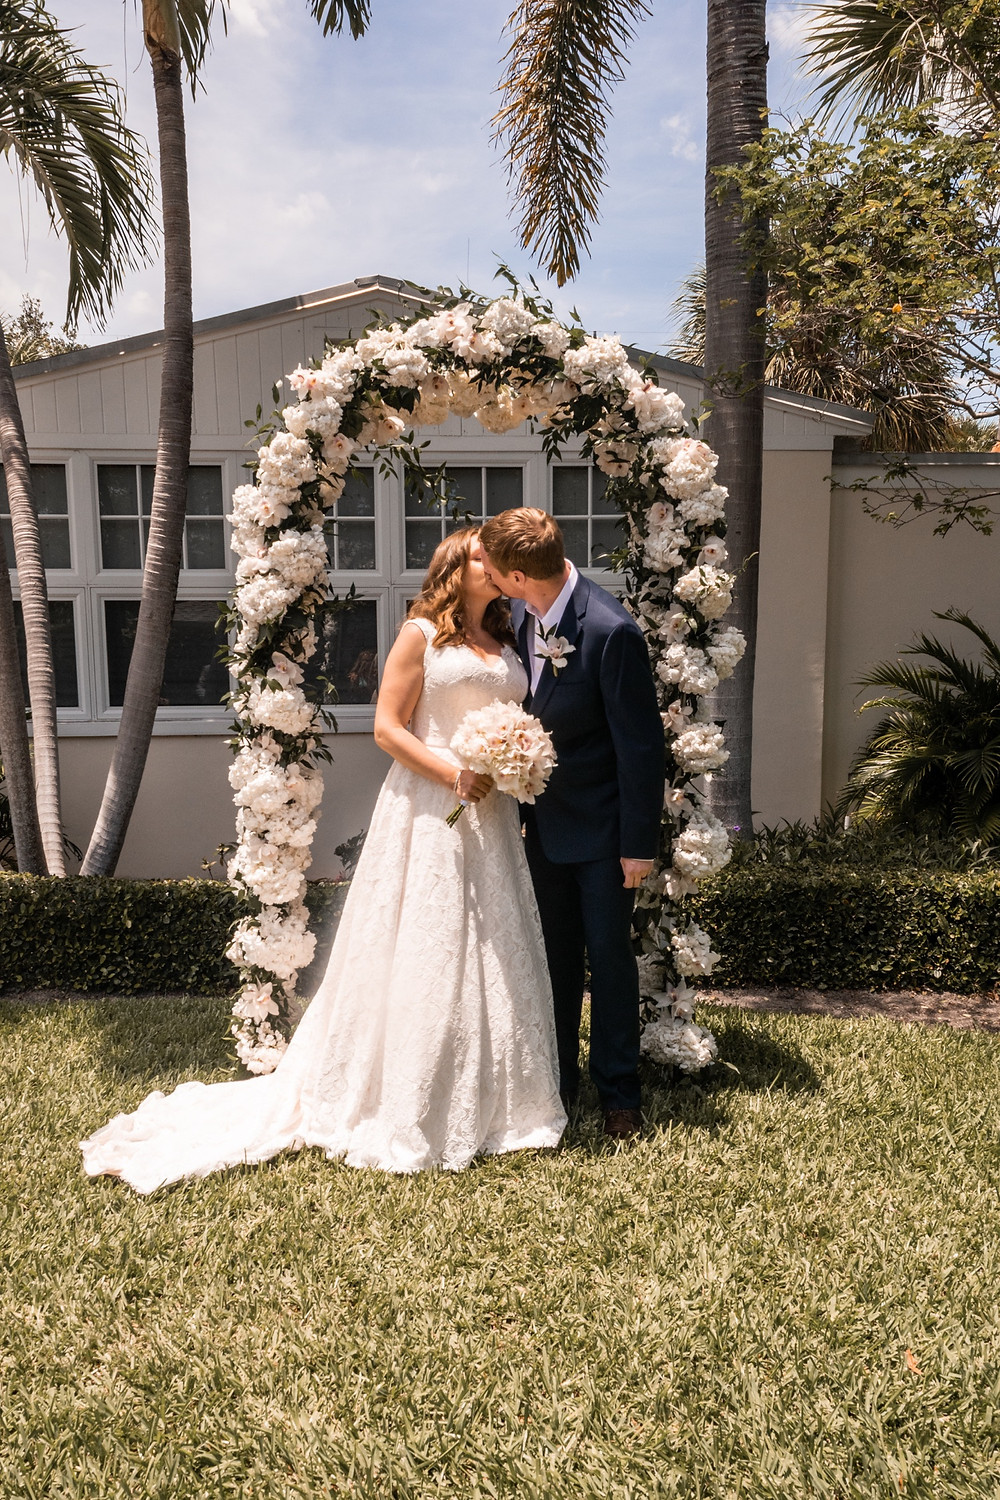 Bride and groom kiss as newlywed couple under arch of flowers